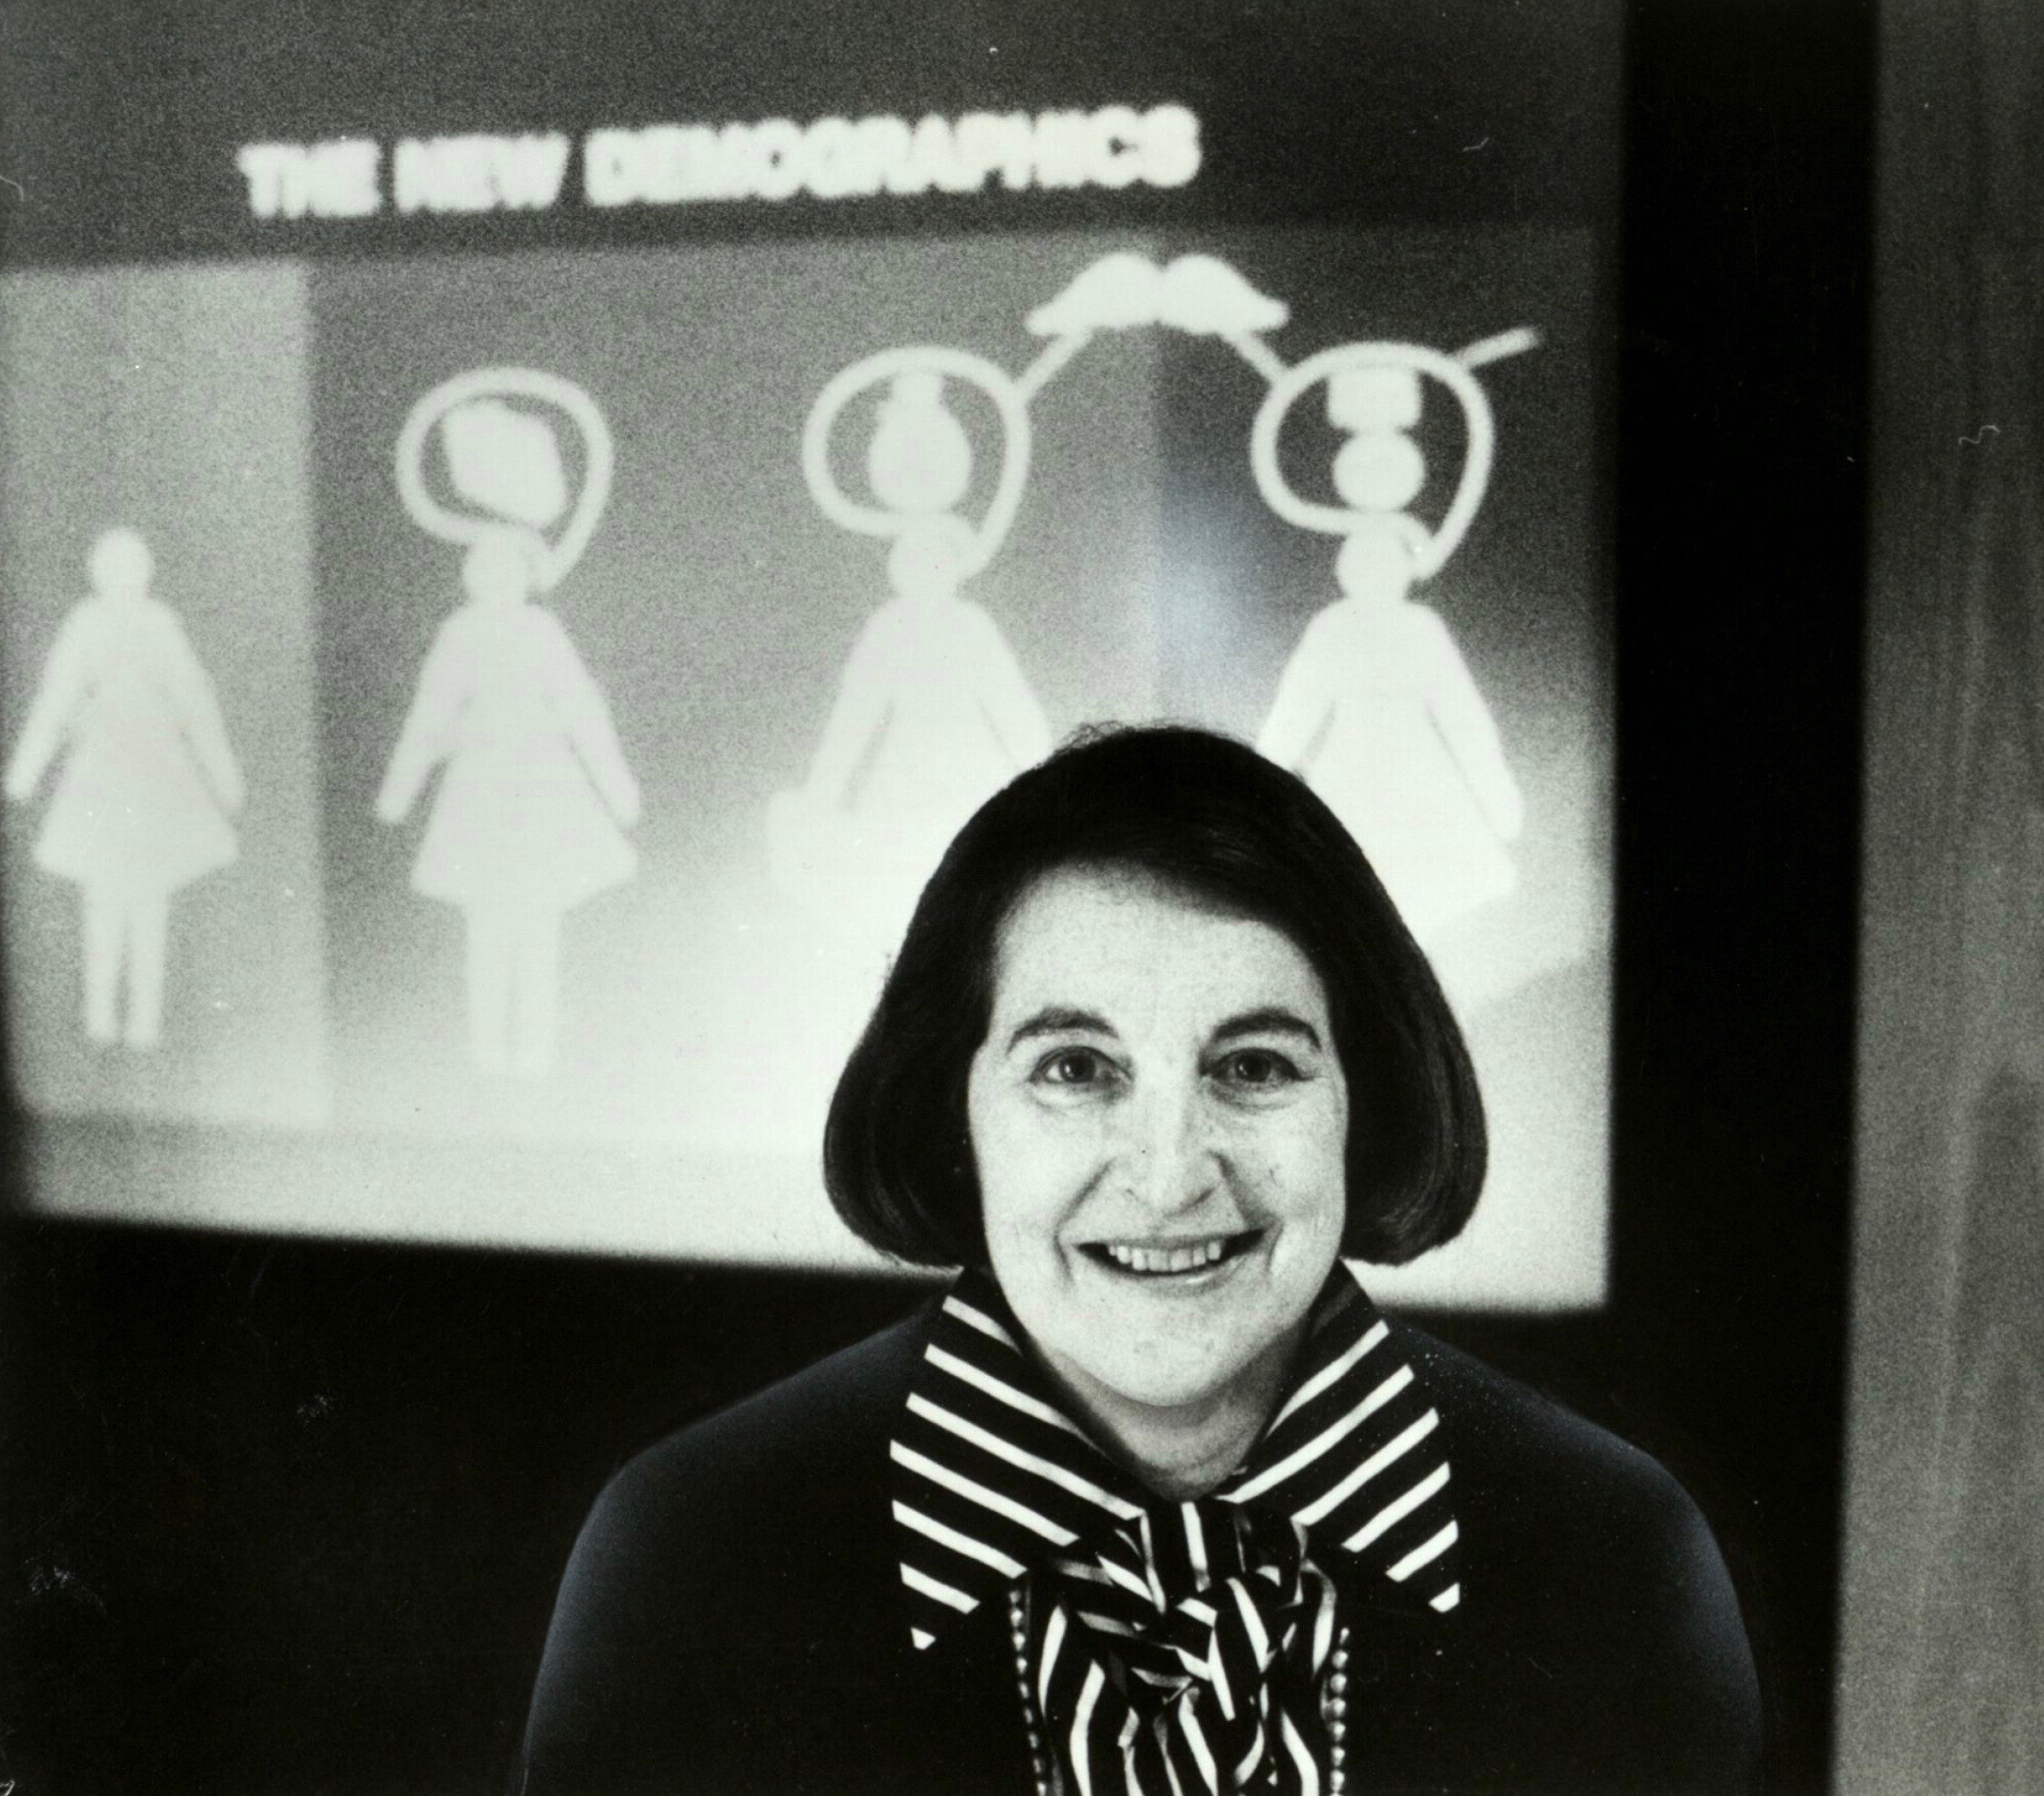 Photograph of Rena Bartos c. 1970